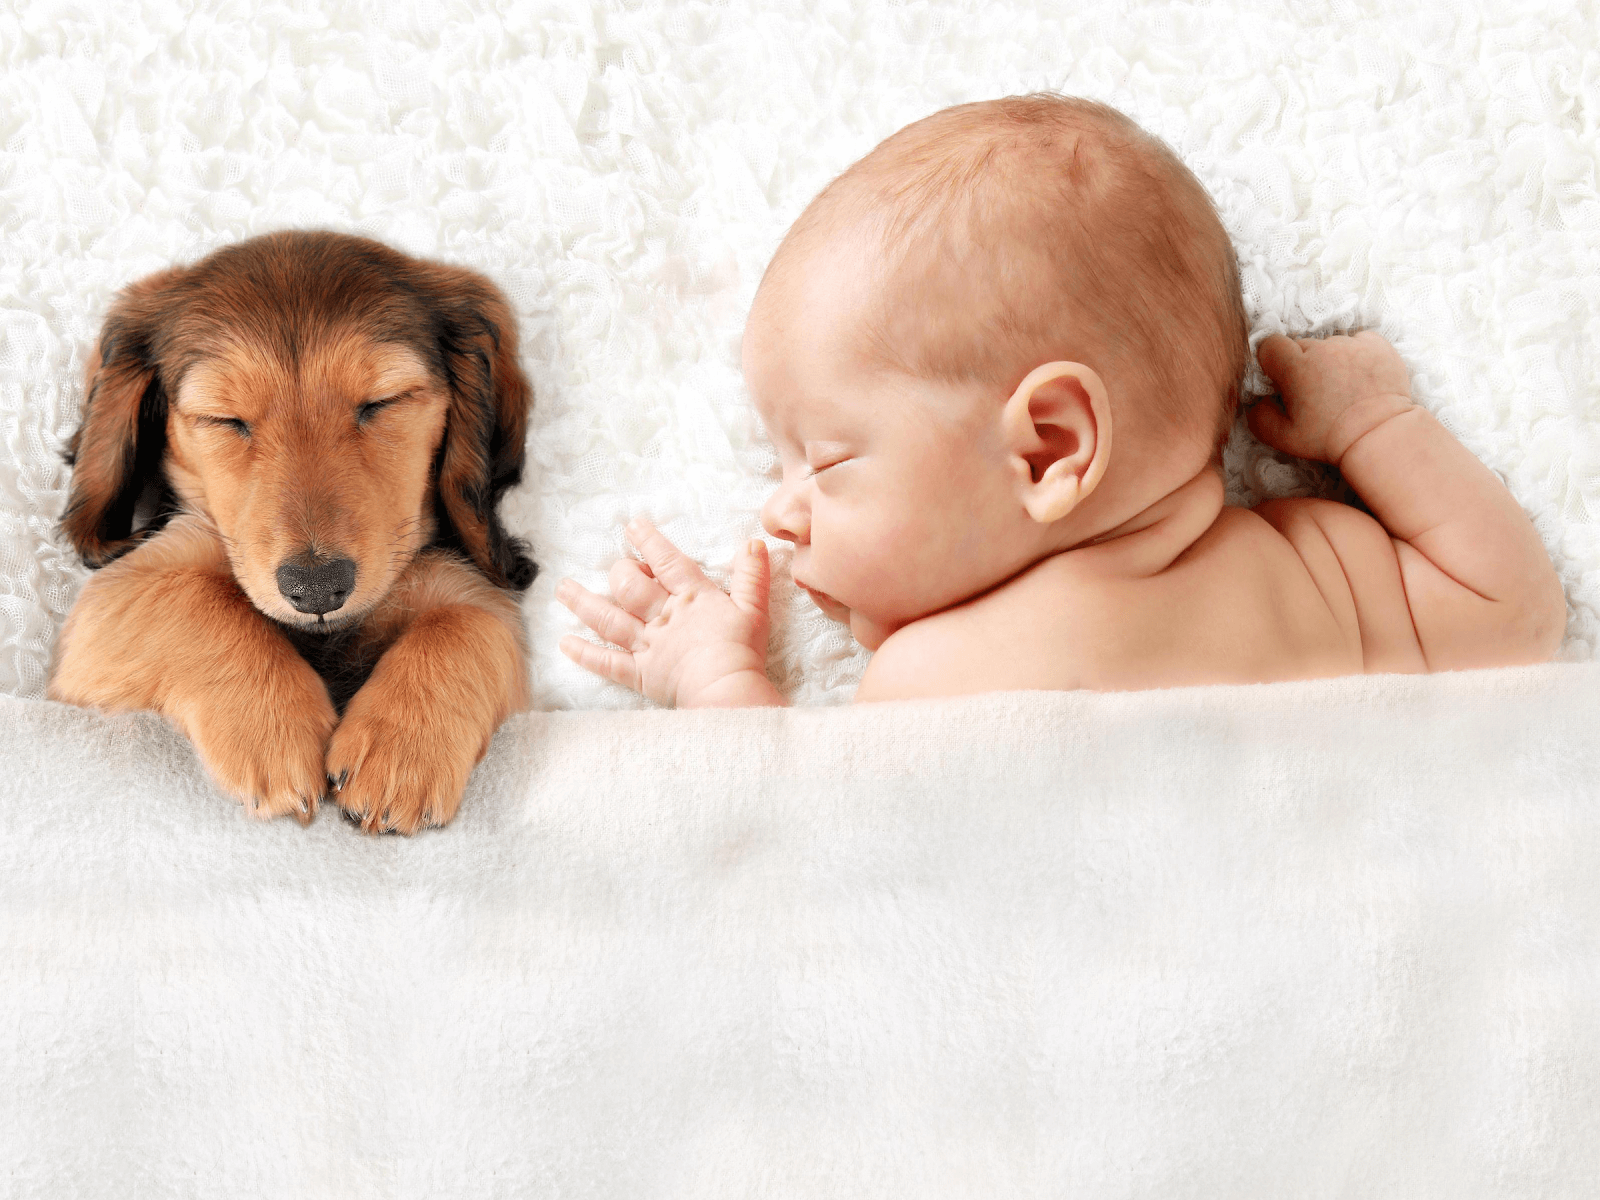 new-baby-and-dog-sleeping-soundly